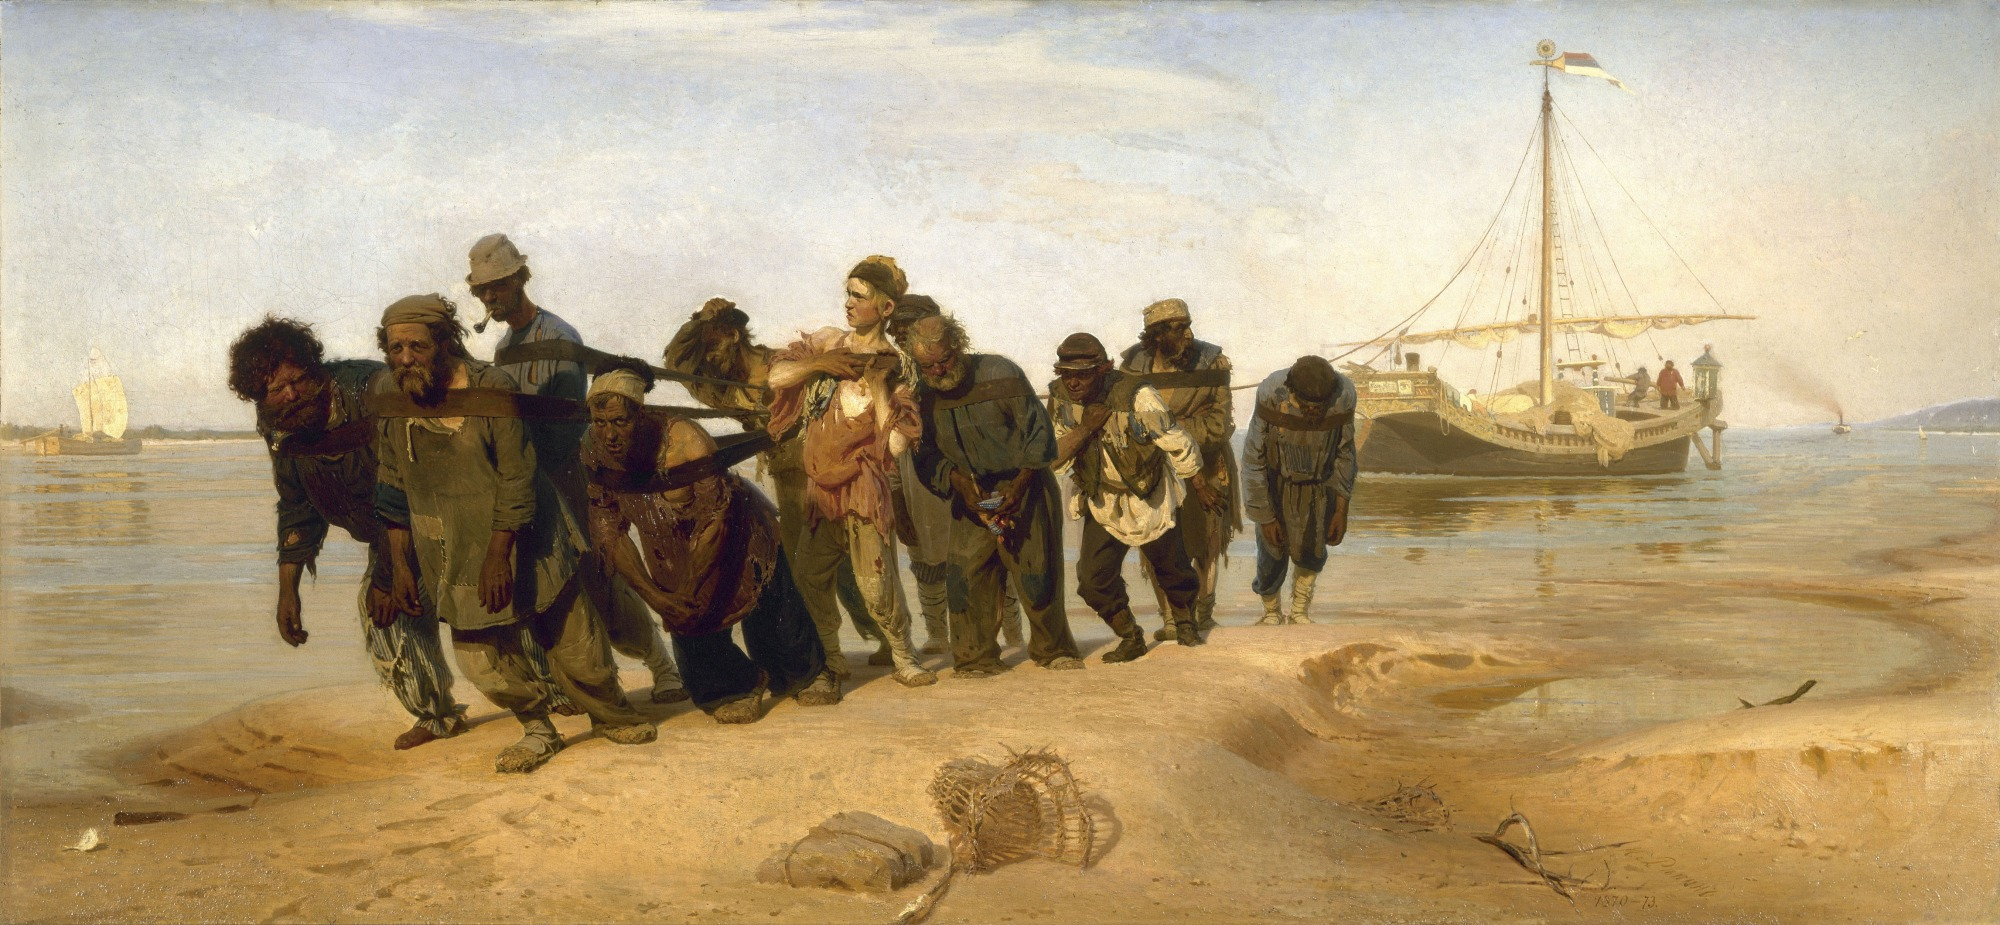 Towards_the_New_Realism_03_Repin1